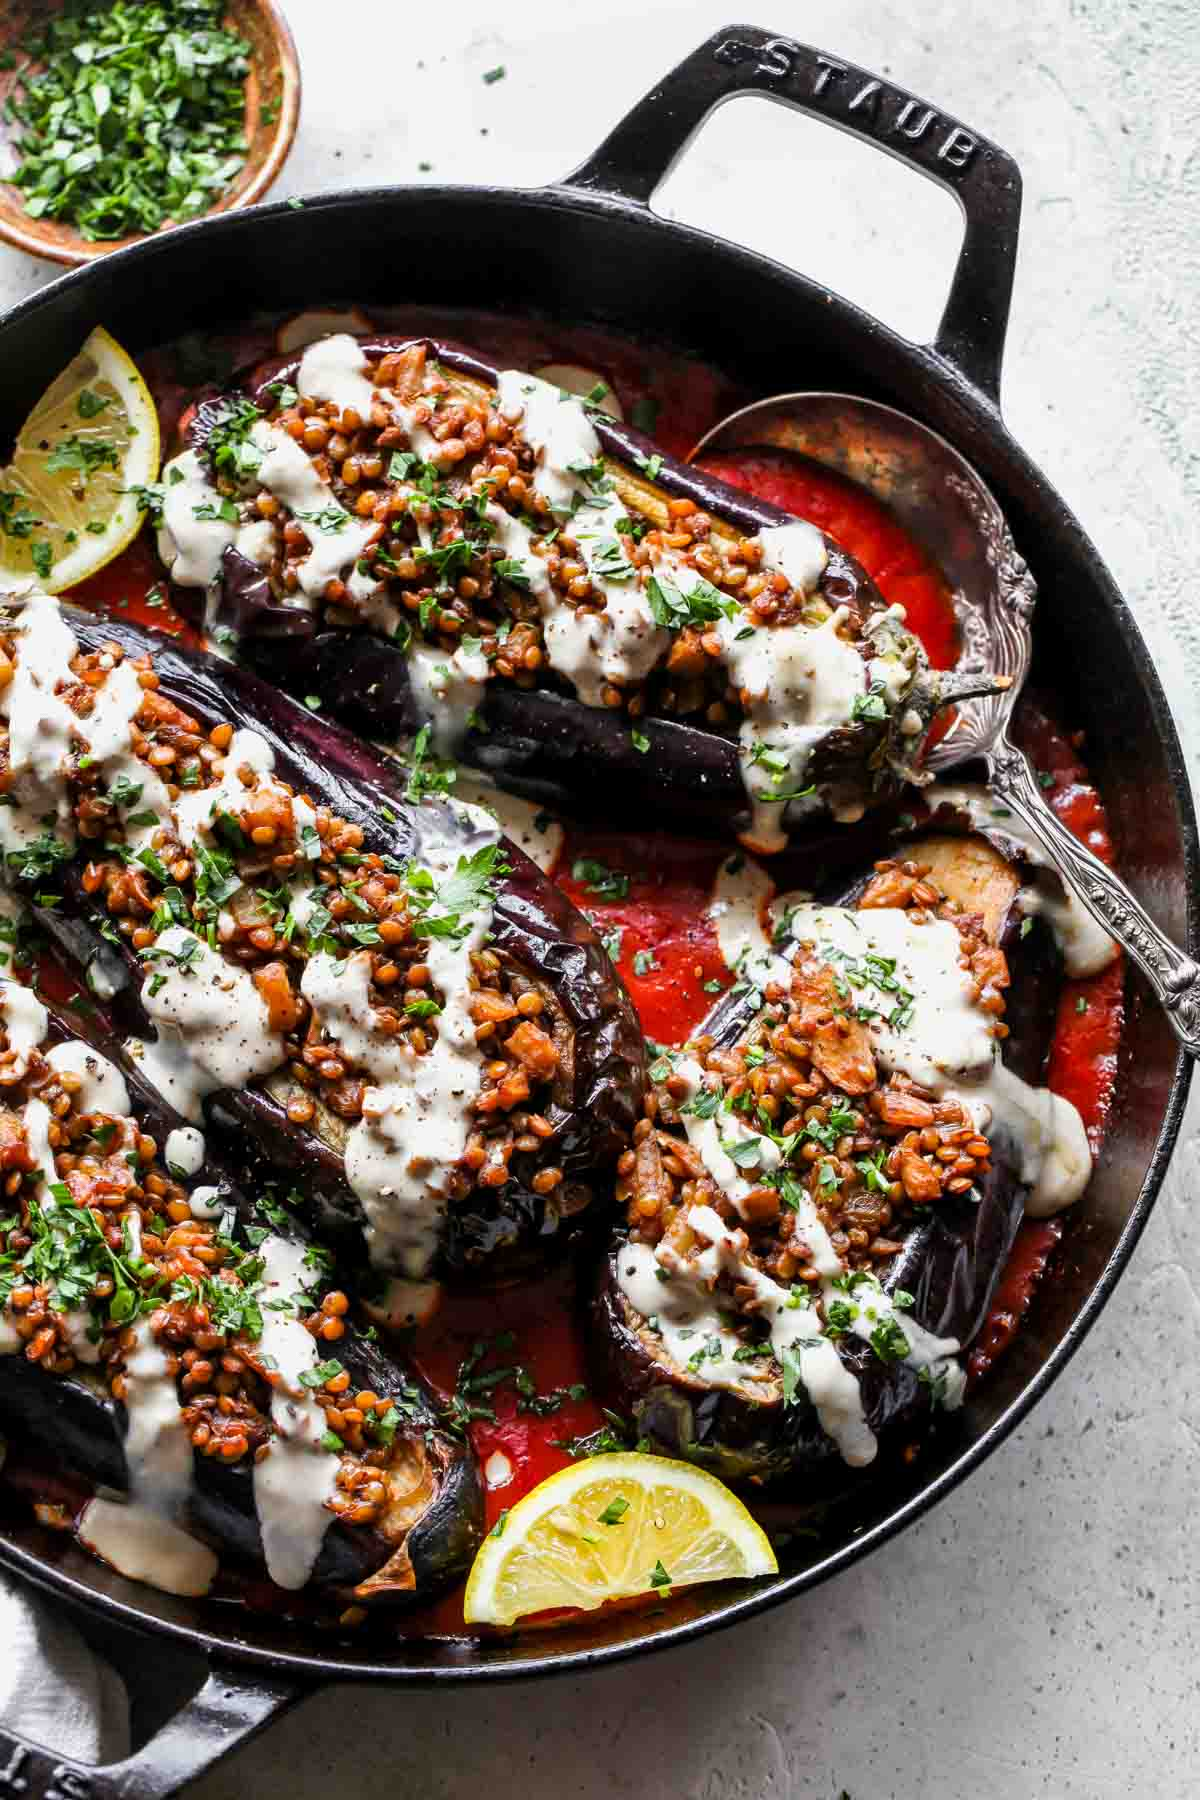 Lentil stuffed eggplants in a pan over tomato sauce